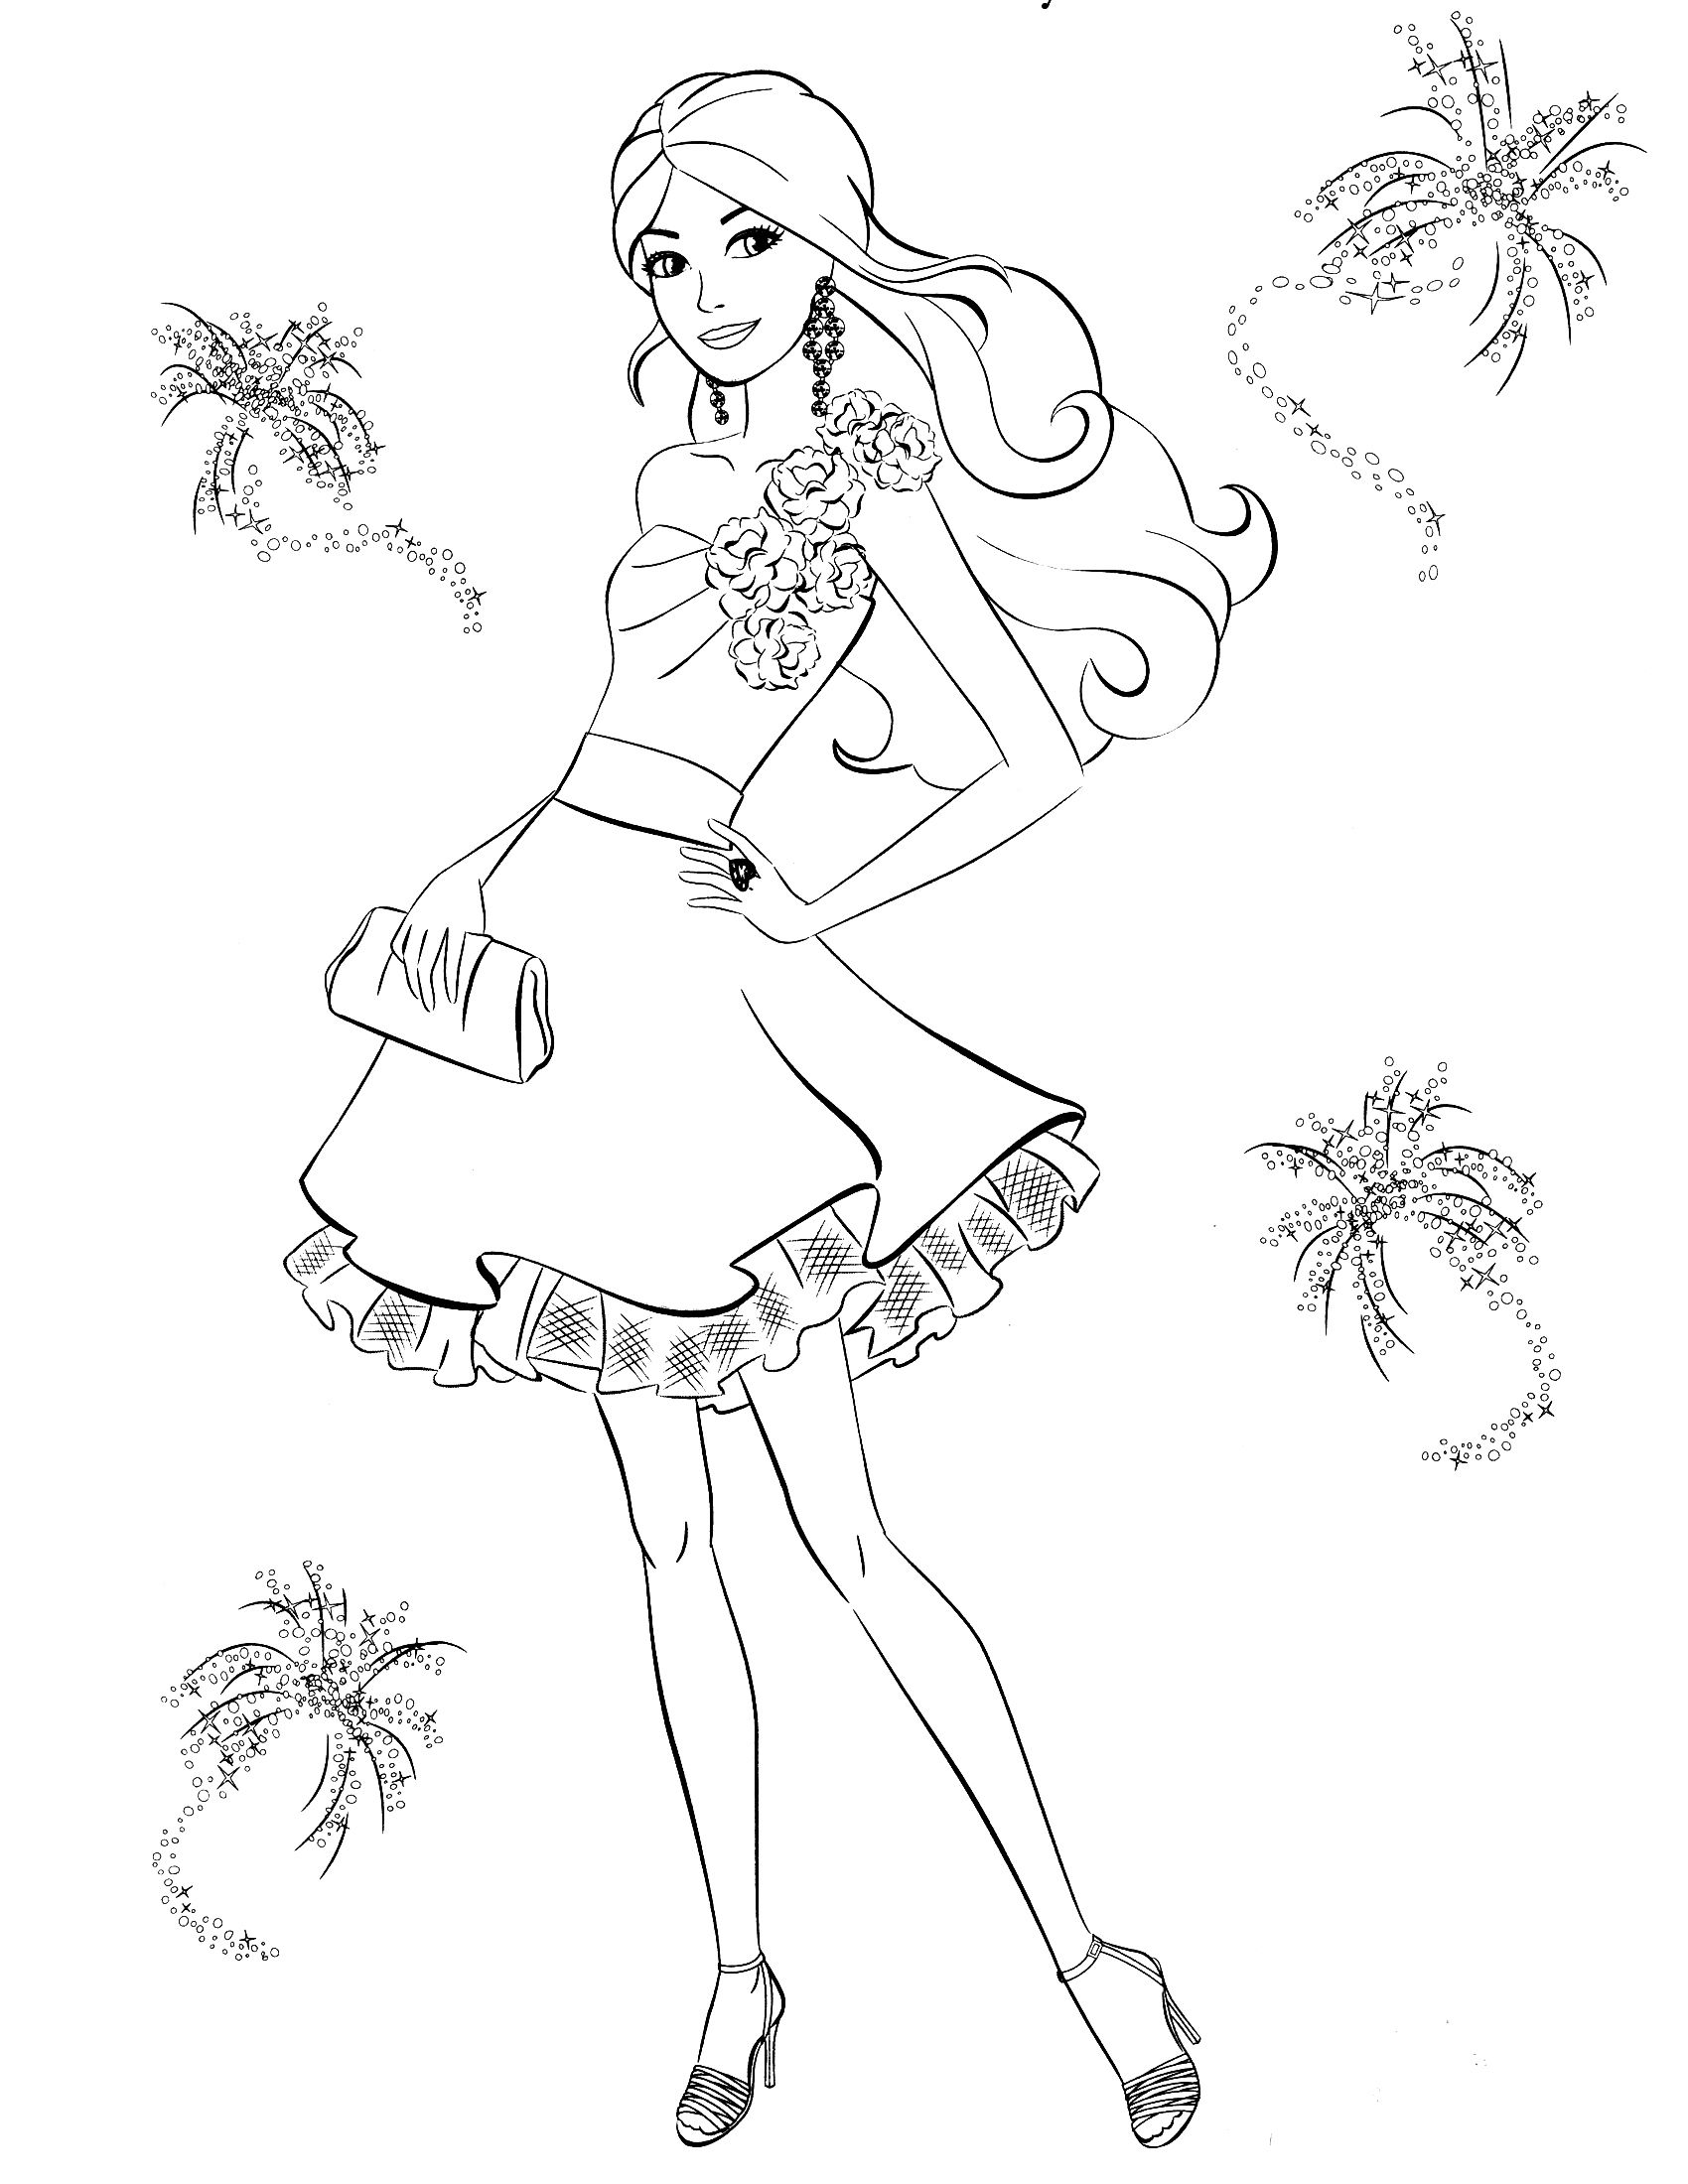 Barbie painting coloring pages designs canvas barbie for Fashion barbie coloring pages